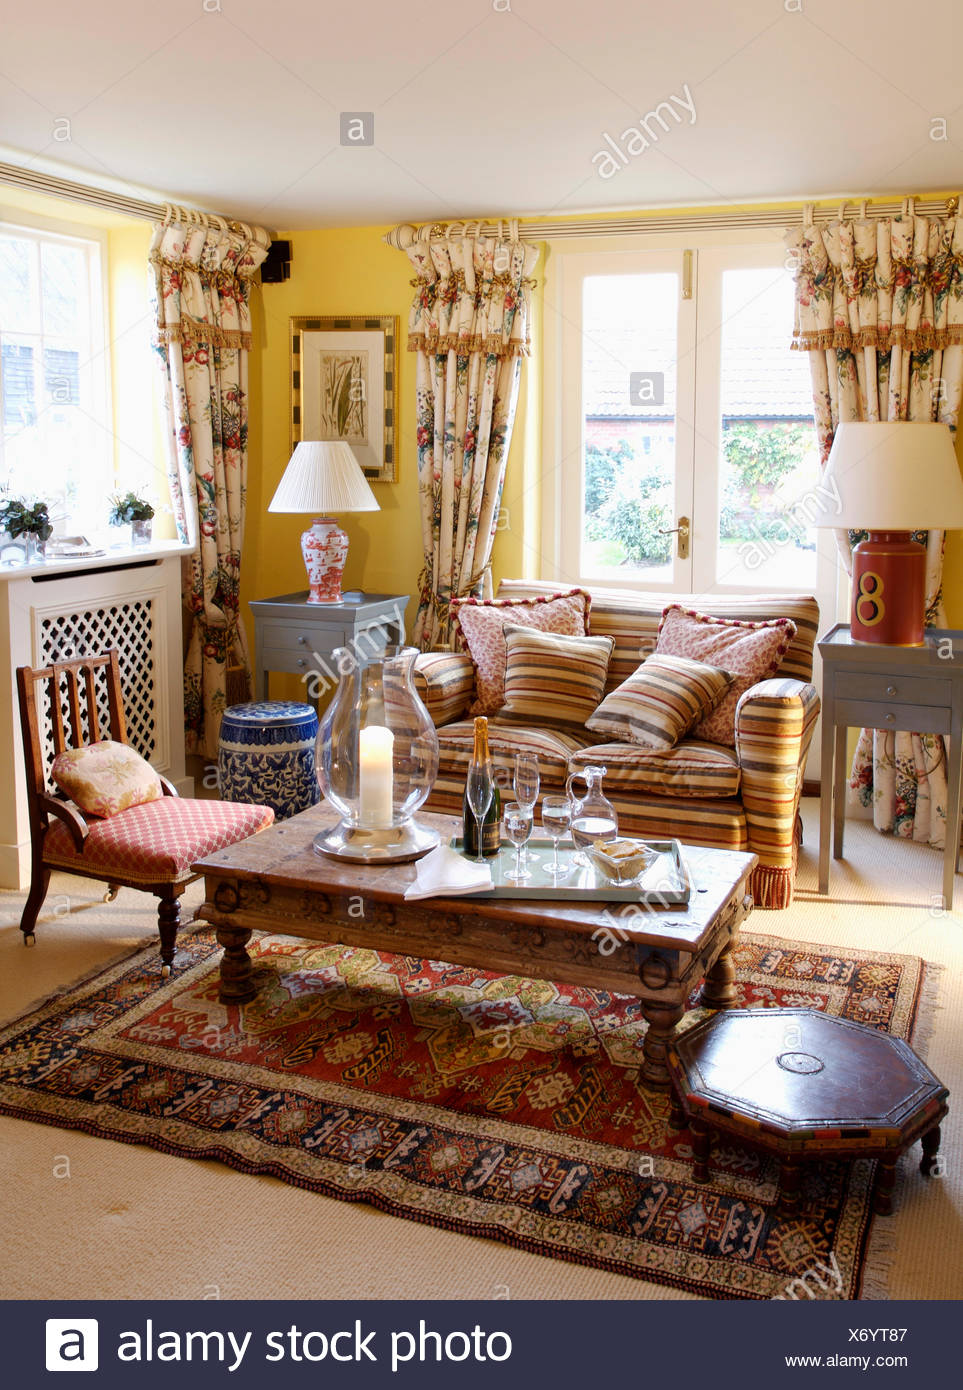 yellow living room rugs modern country style ideas brown striped sofa and floral curtains in with indonesian coffee table on patterned rug